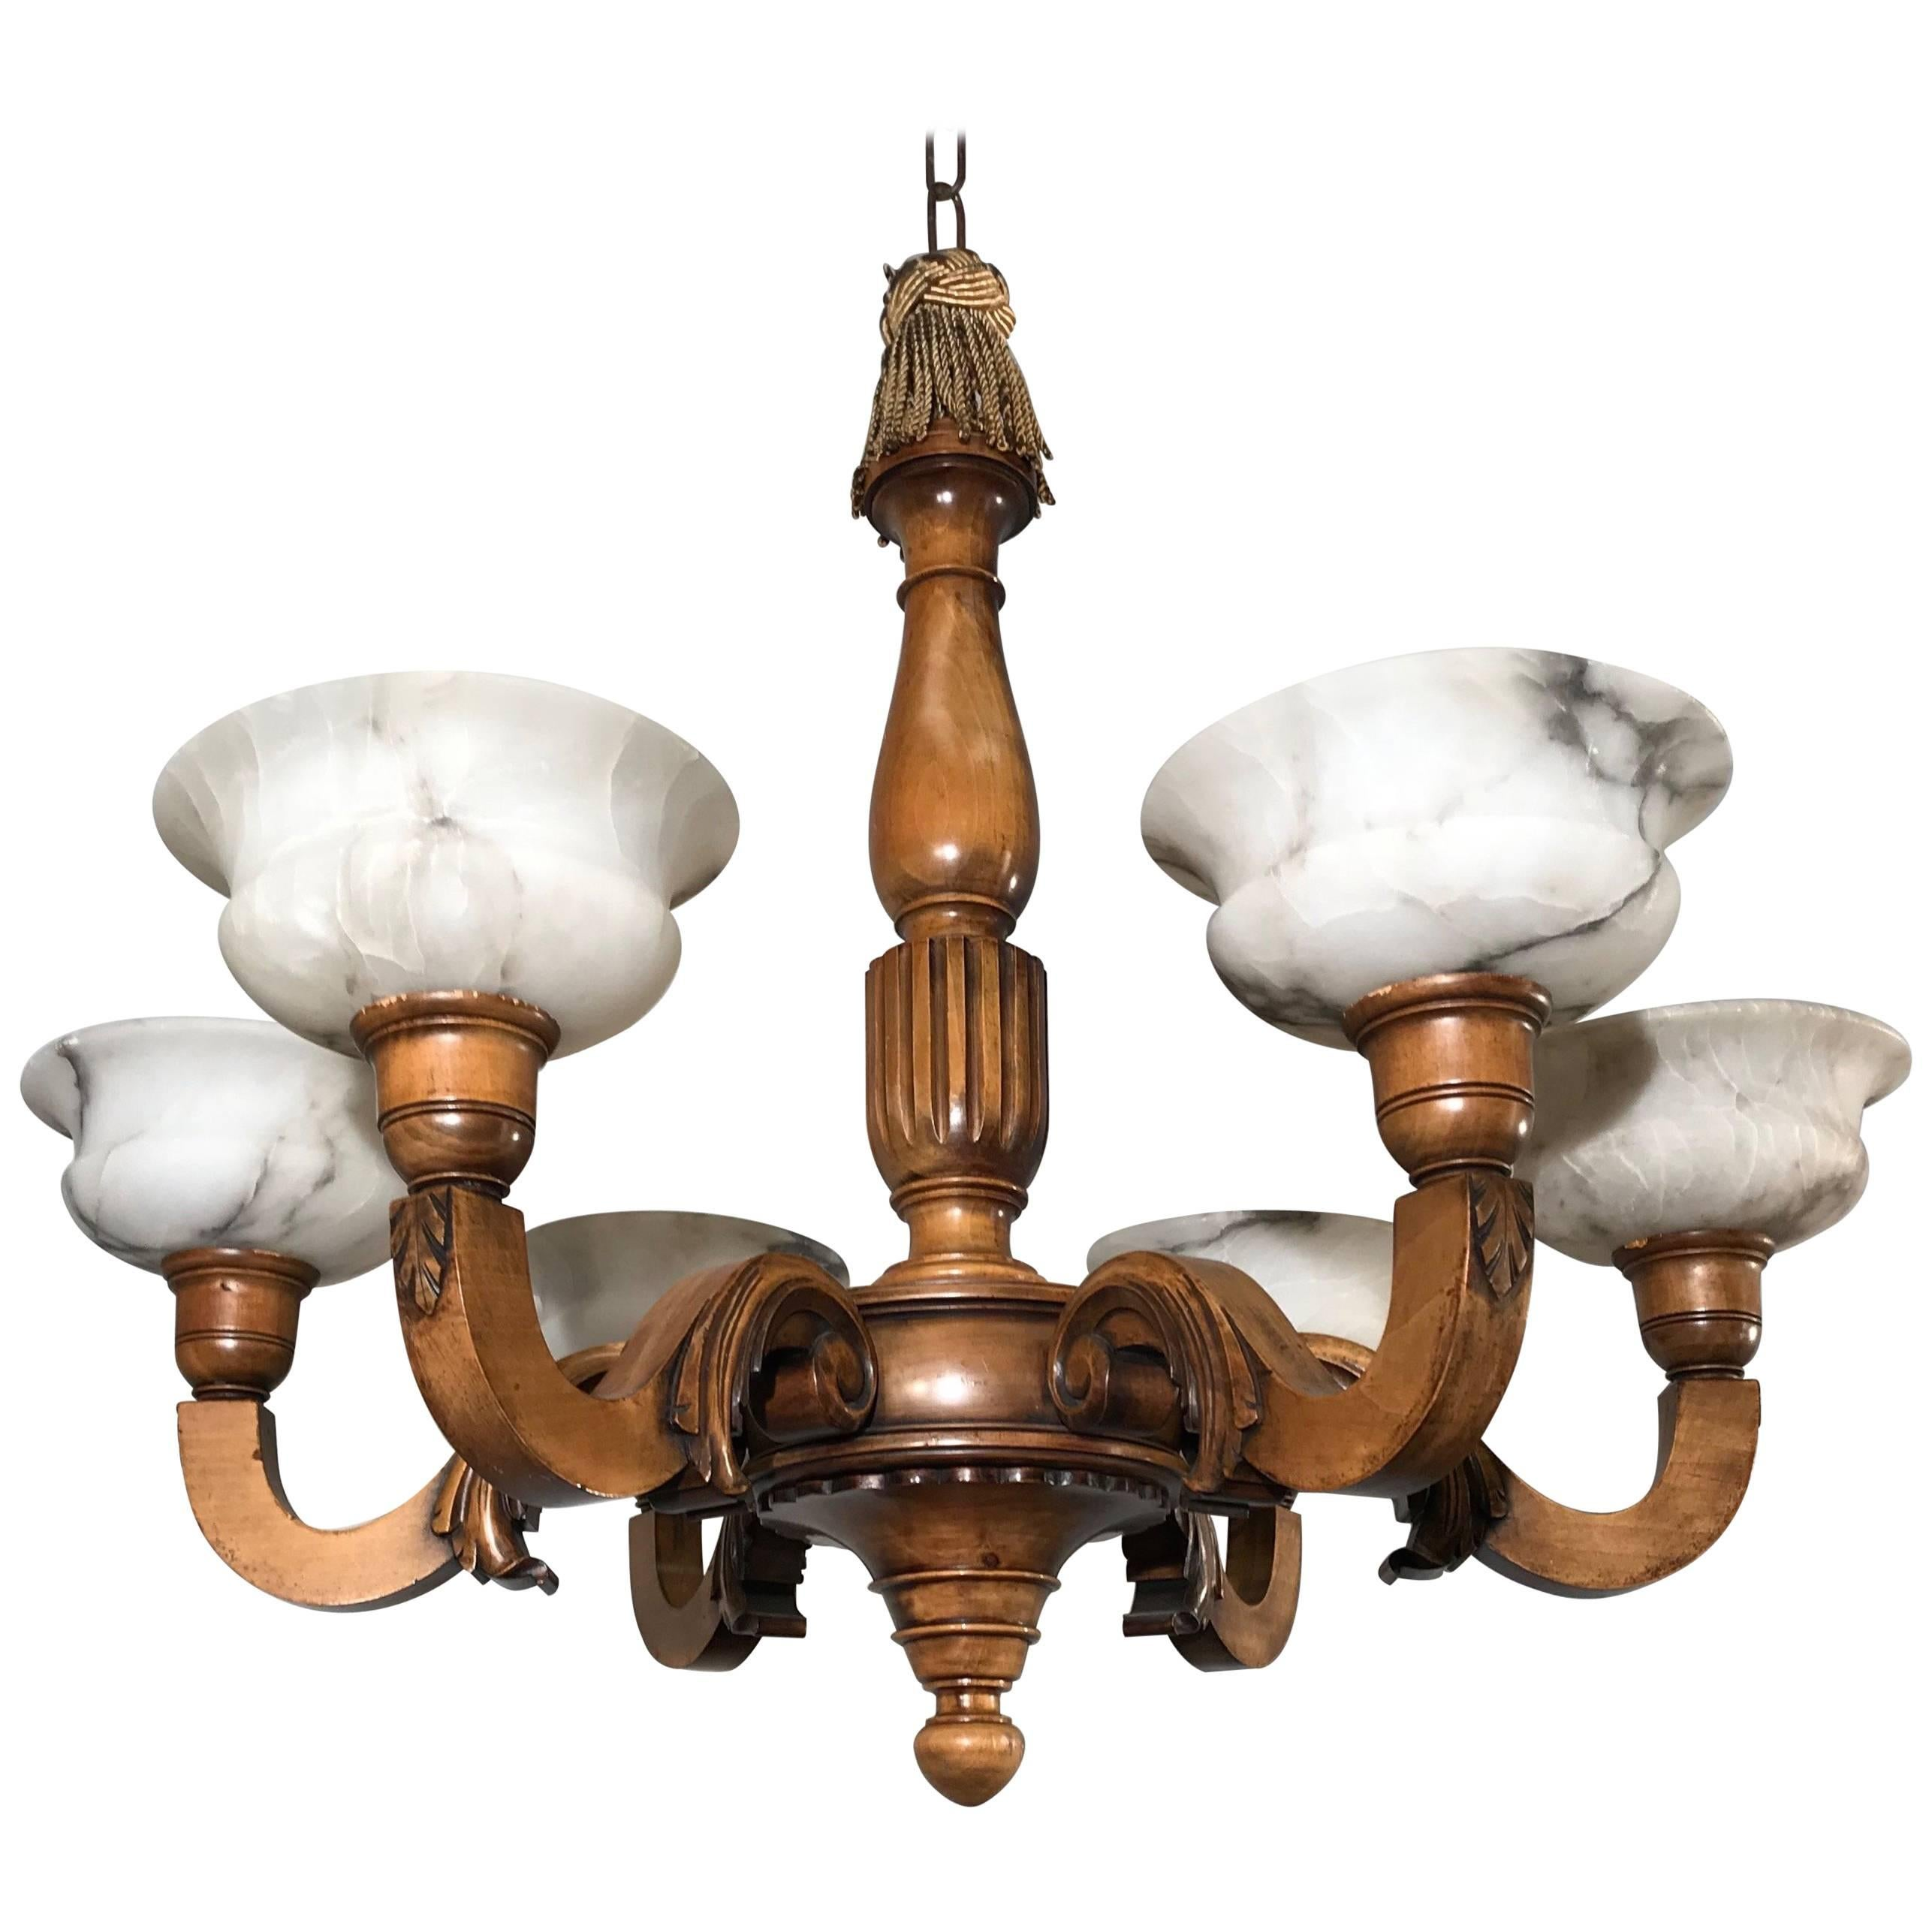 Early 1900s Six Light Quality Carved Wood Chandelier with White Alabaster Shades